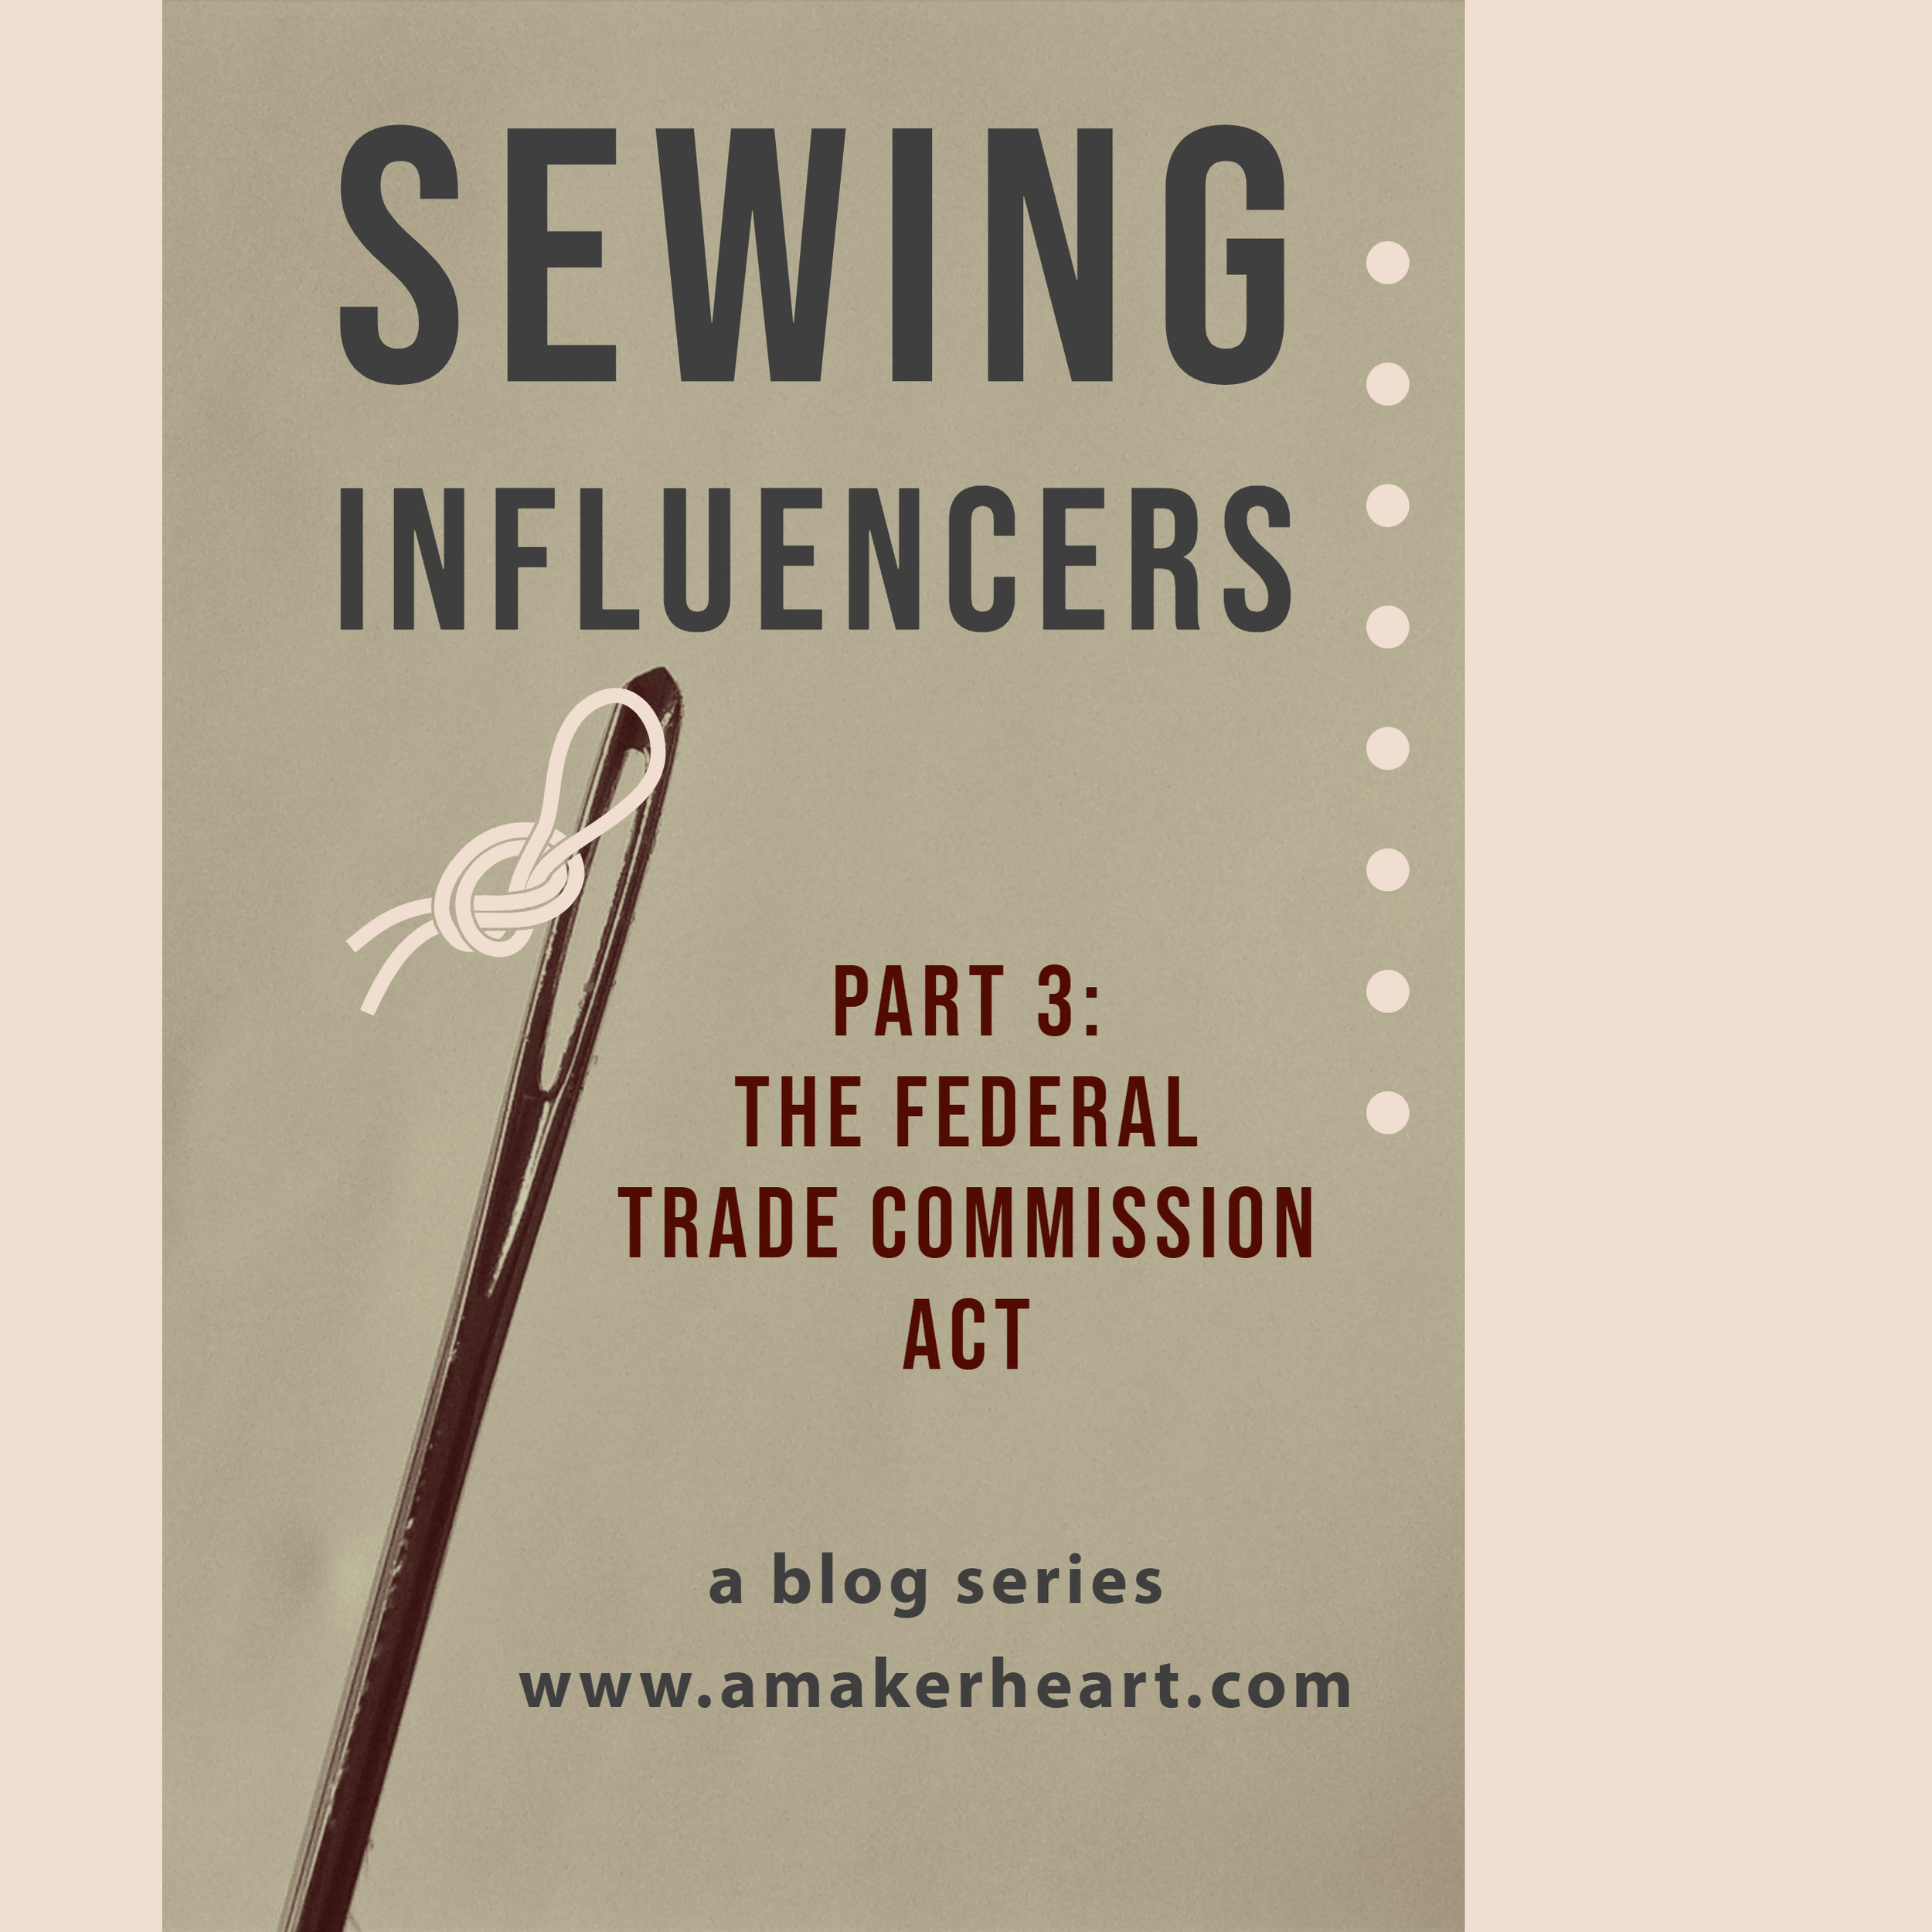 Sewing Influencers Part 3.jpg